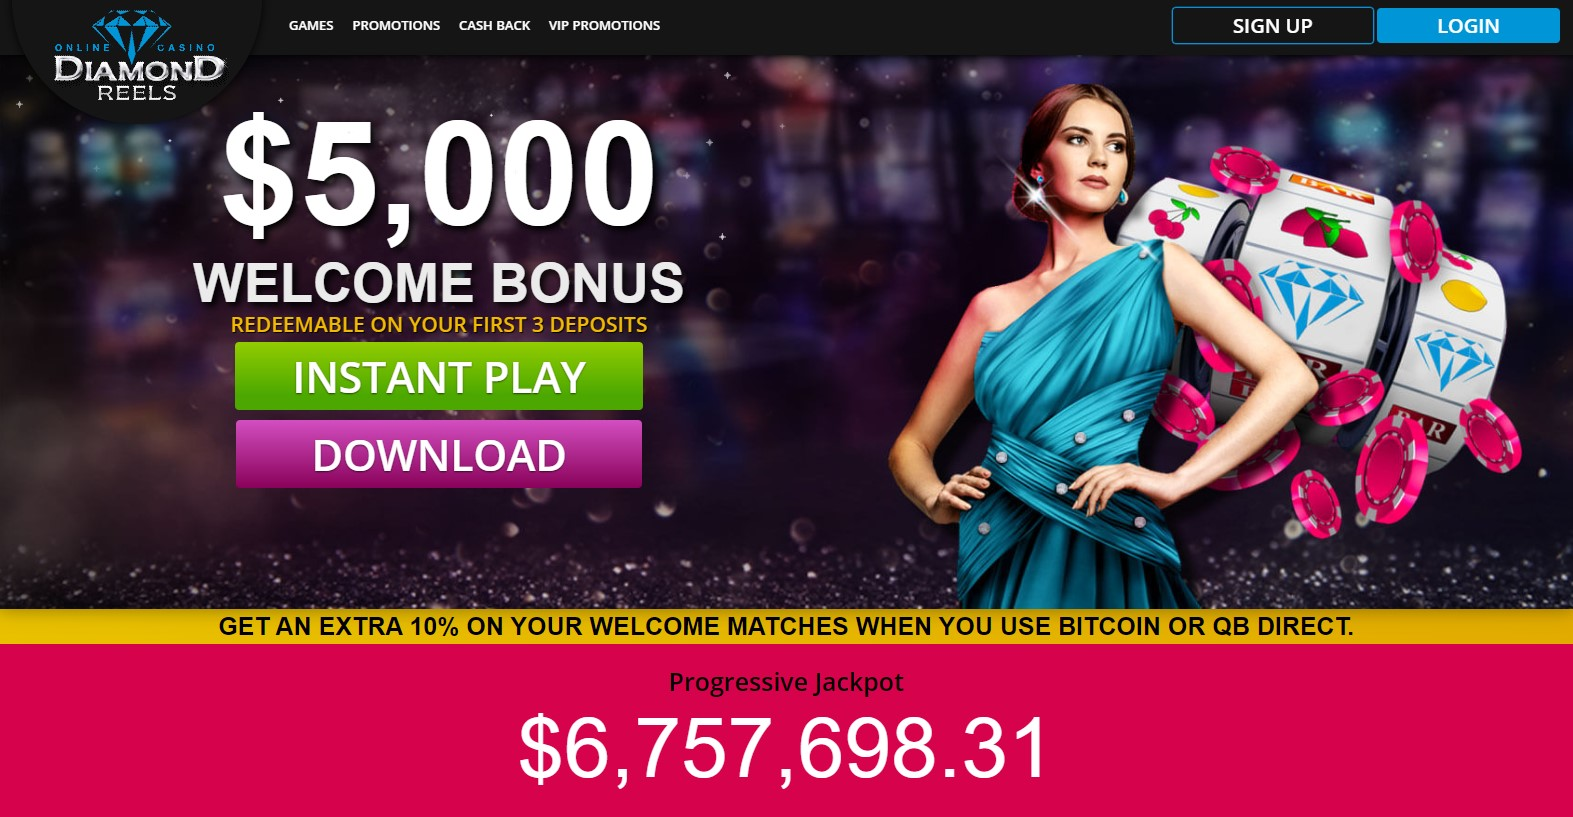 Diamond Reels Casino Landind Page